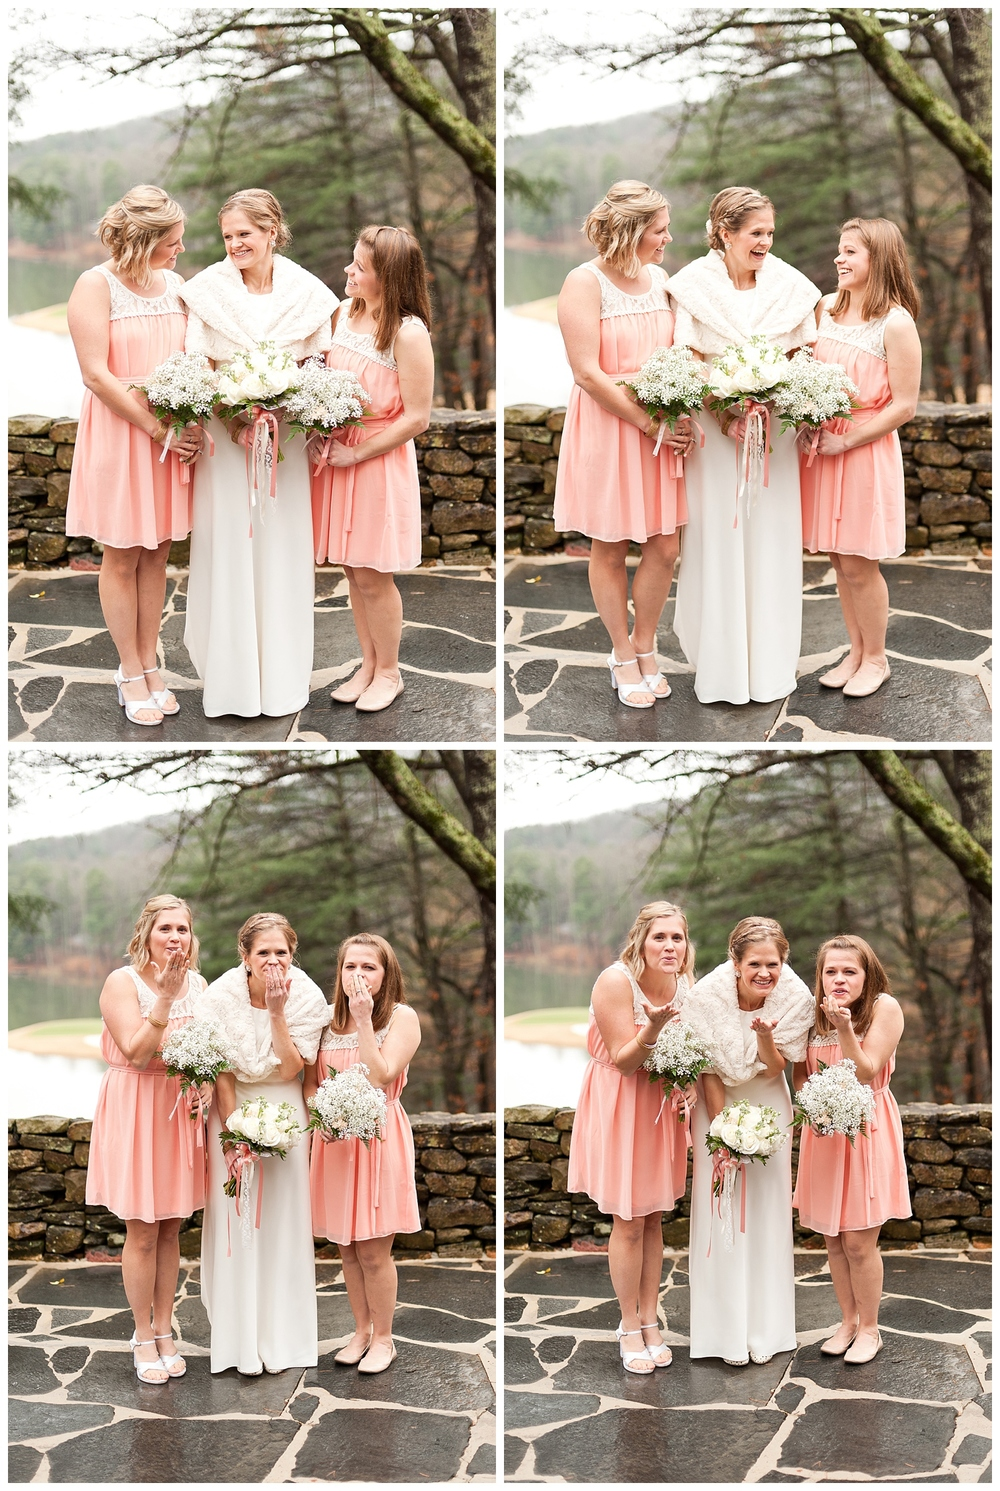 BloomandLo_SaraandJones_BigCanoeWedding_Chimneys_Blog_0031.jpg